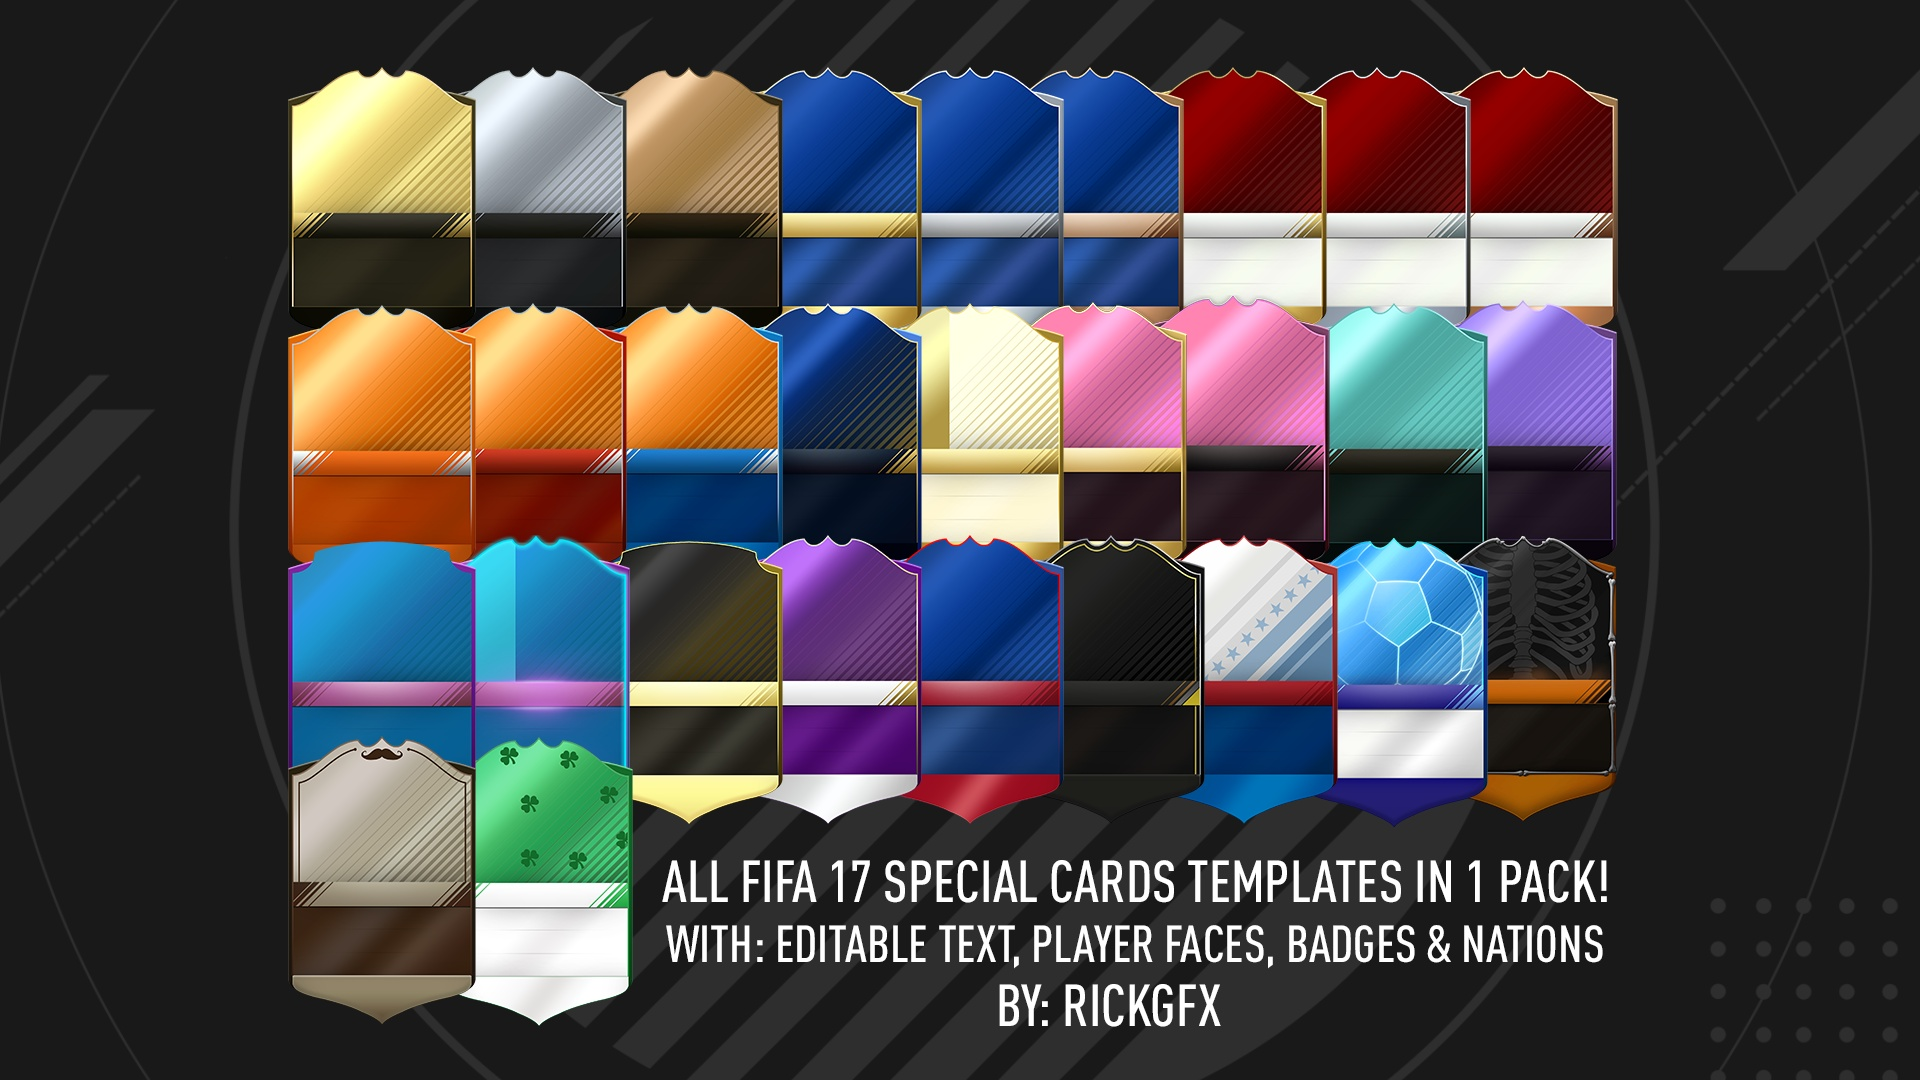 FIFA 17 ALL SPECIAL CARDS TEMPLATES!